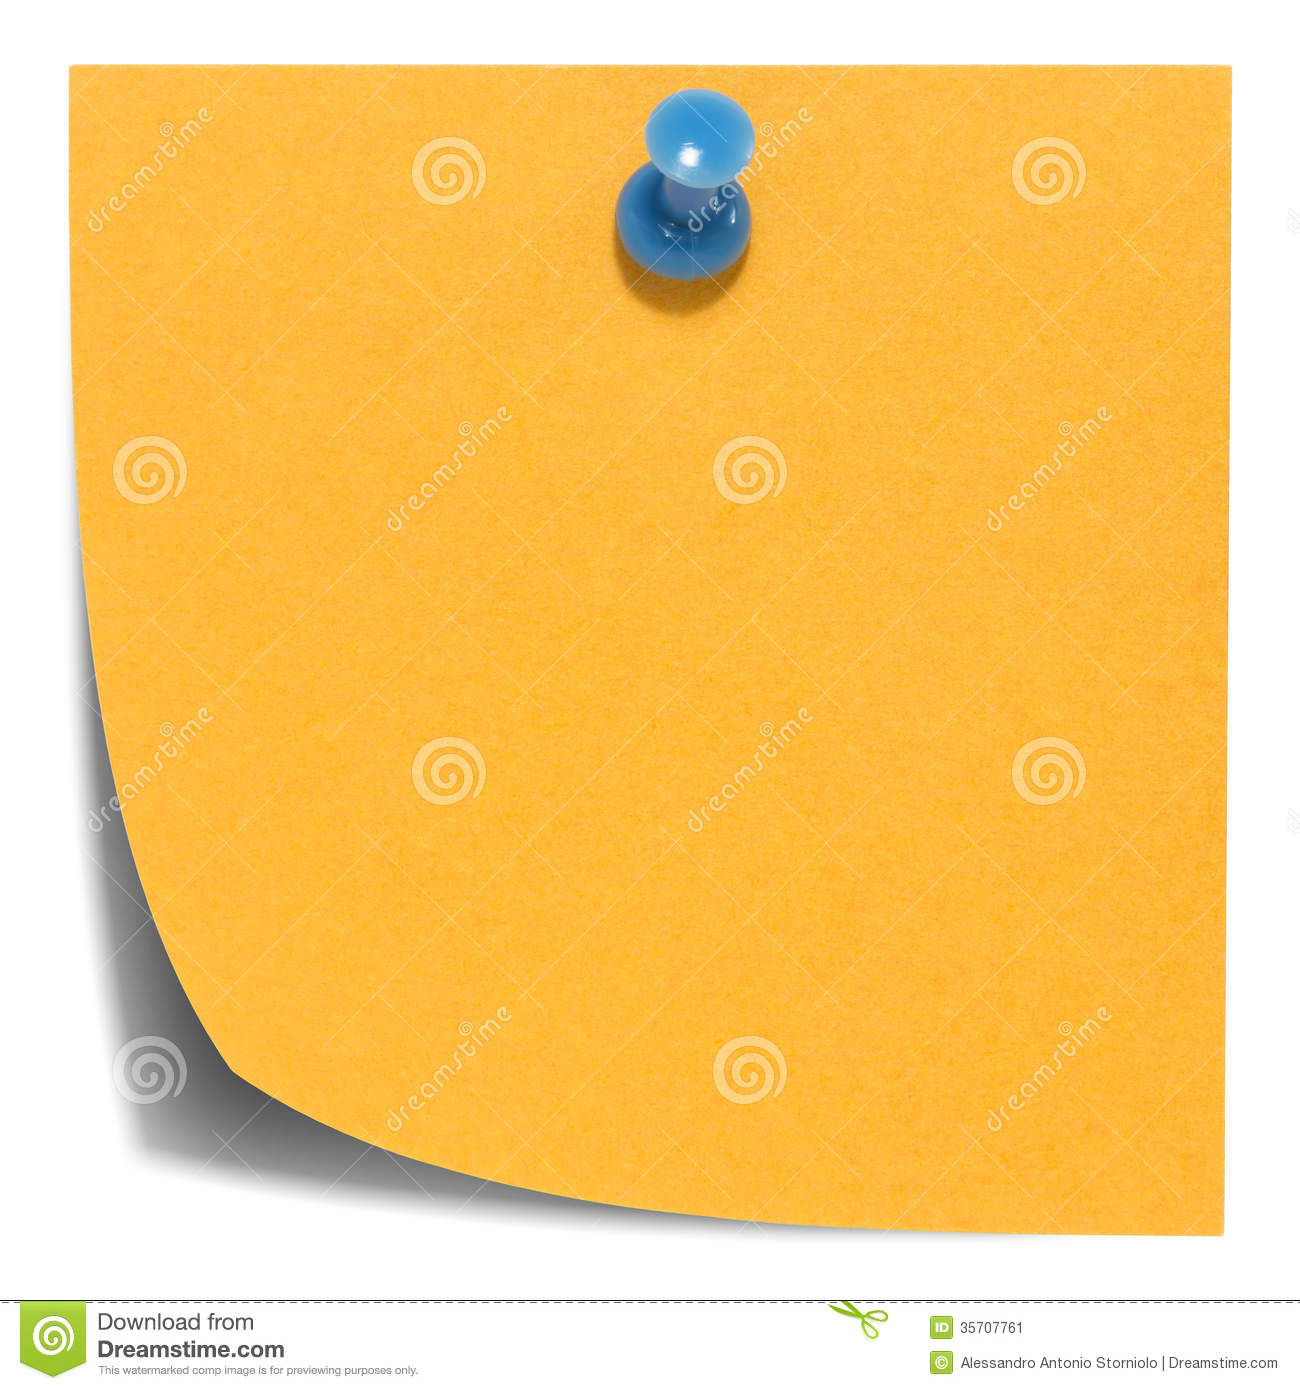 Orange square sticky note, with a blue pin, isolated